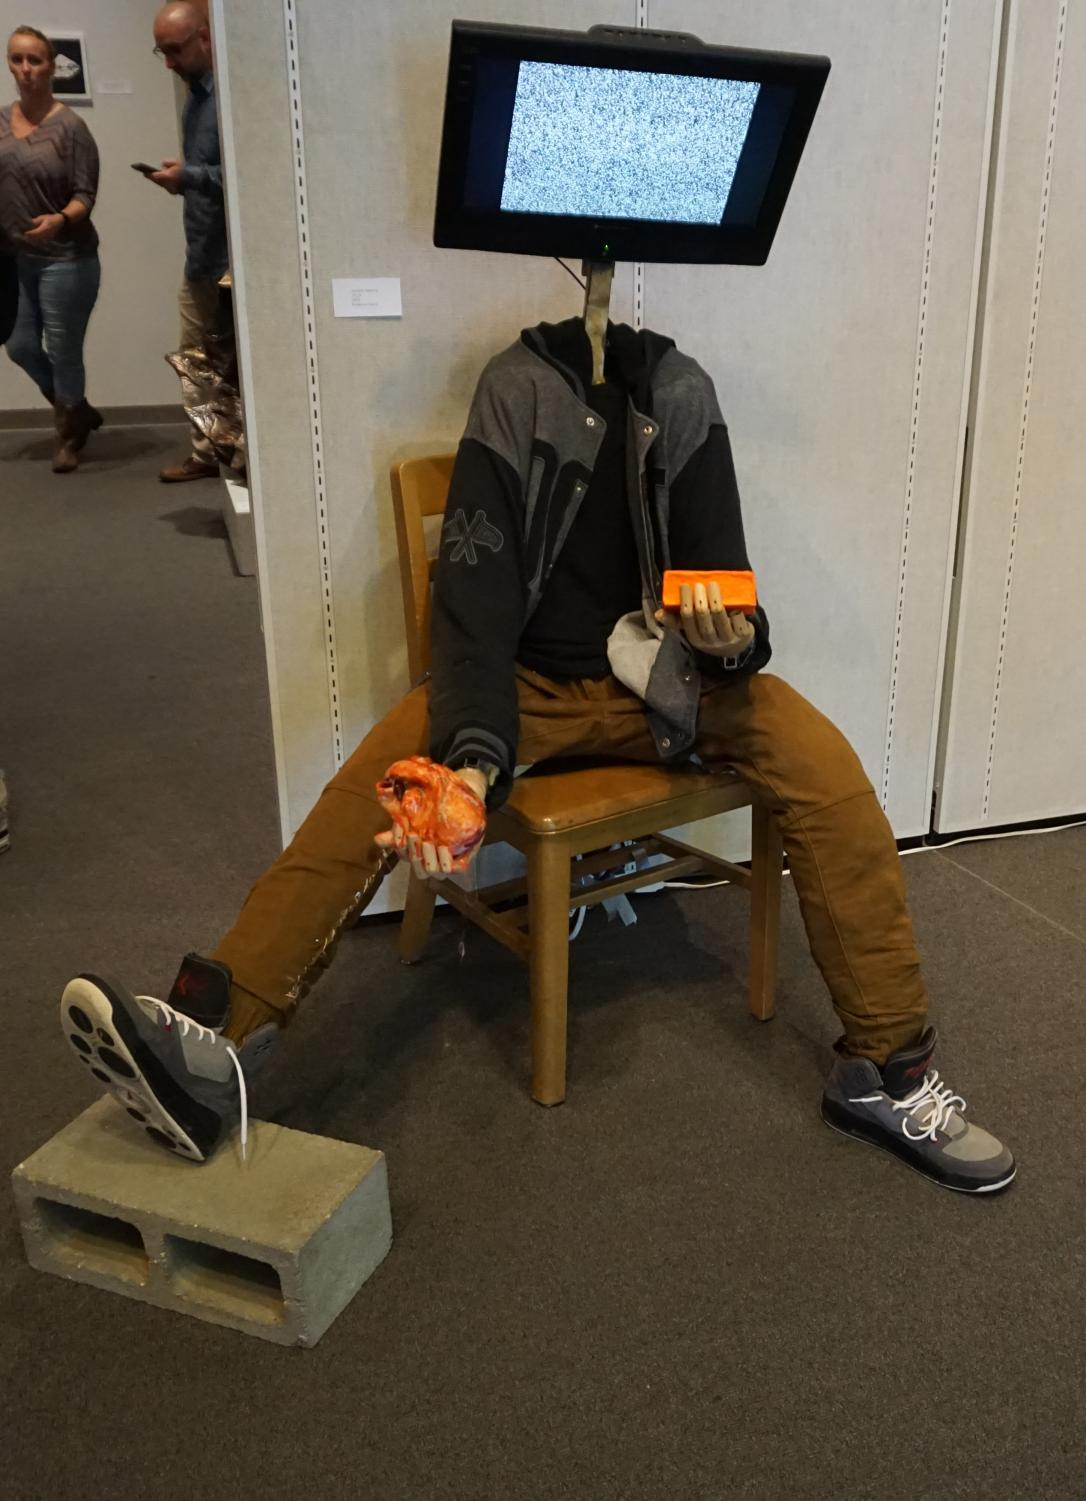 A student summited artwork in the form of a sculpture with a TV for a head.